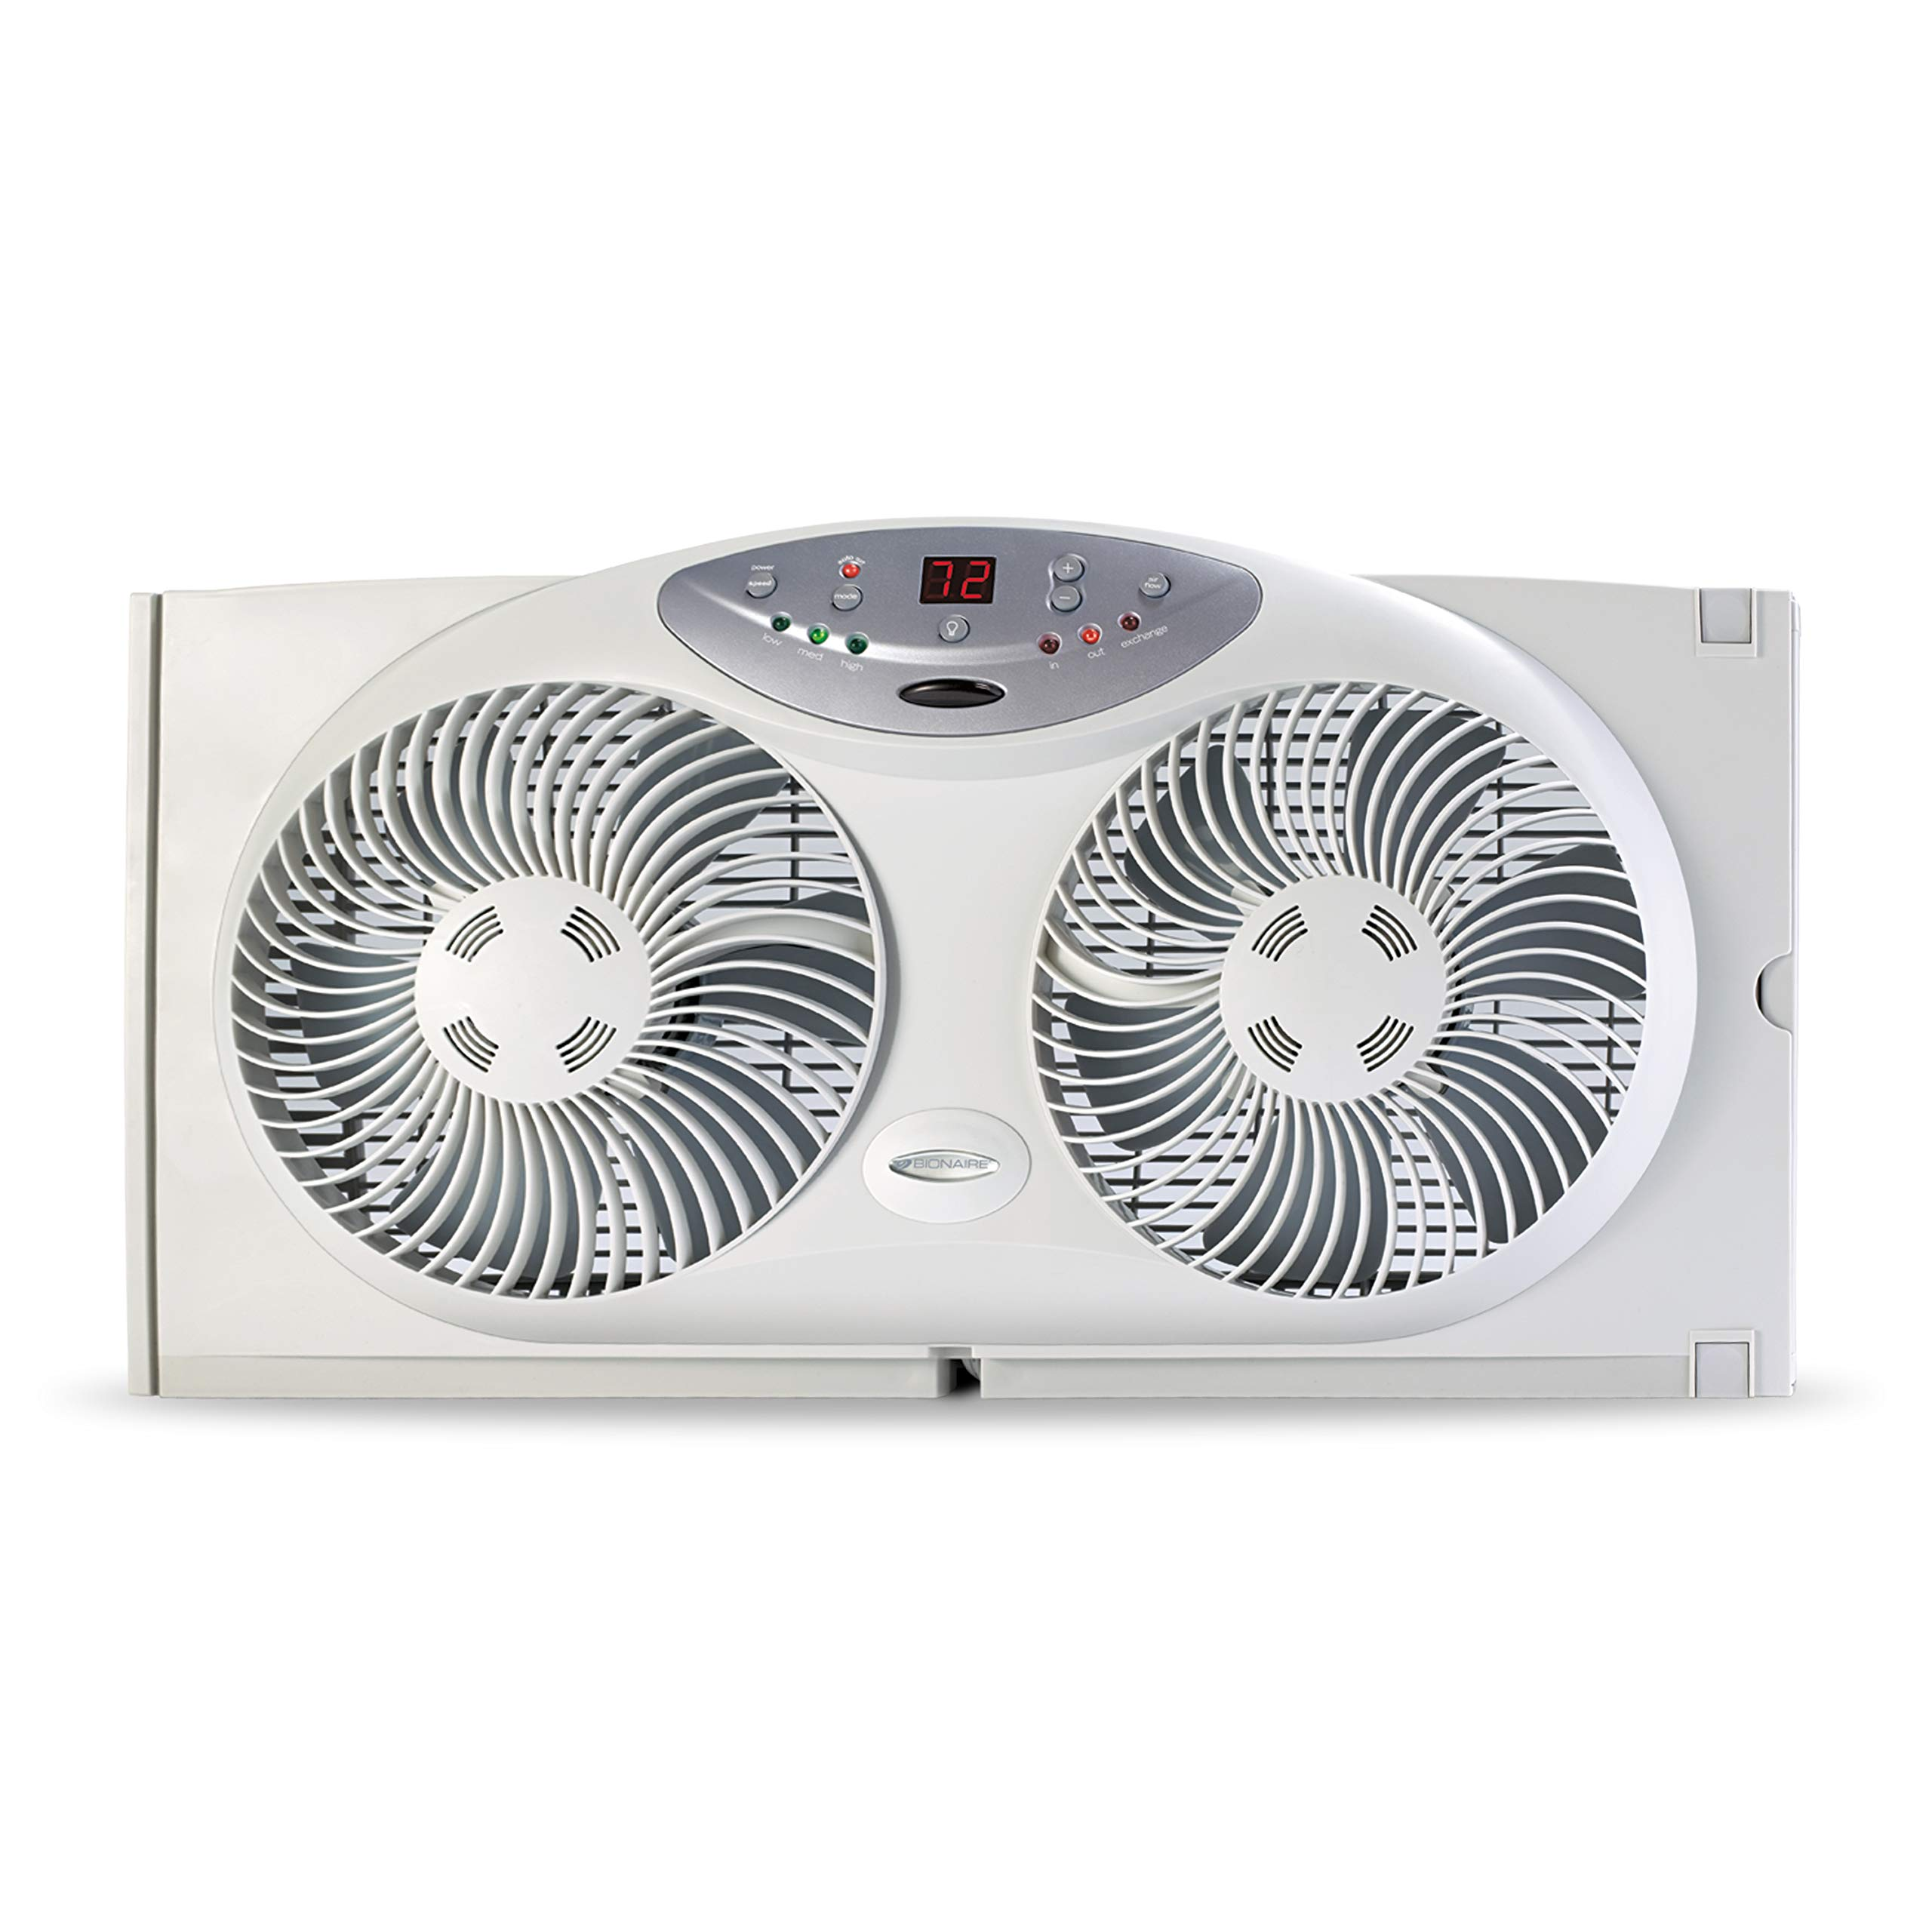 Bionaire Window Fan with Twin 8.5-Inch Reversible Airflow Blades and Remote Control, White by Bionaire